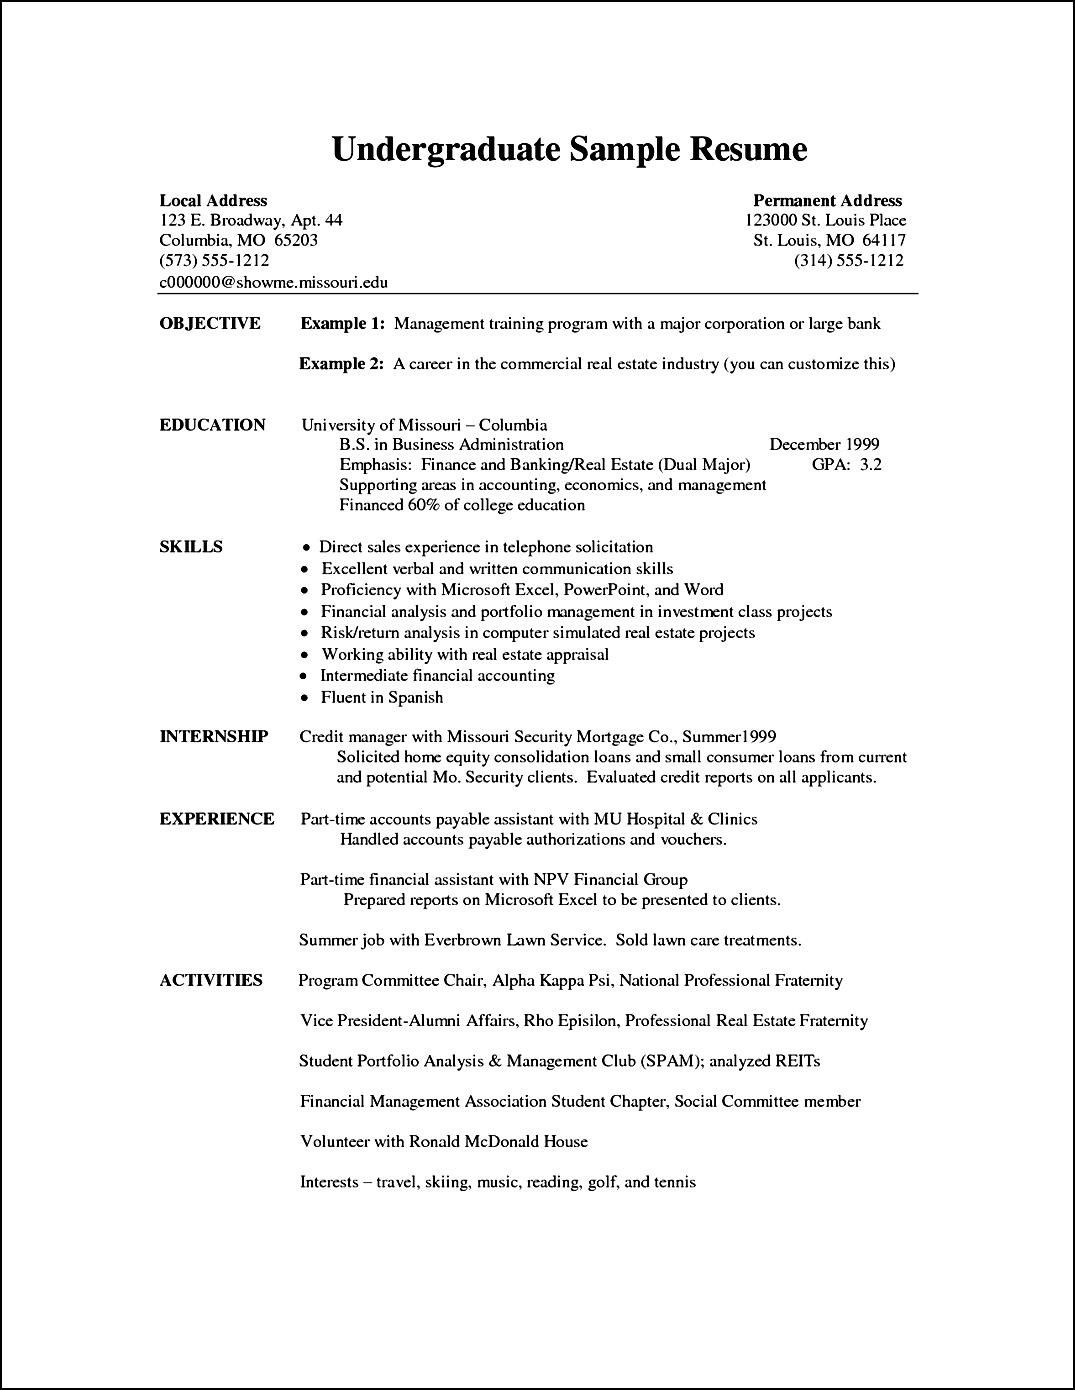 Cover Letter Accounting Beauteous Sample Resume Undergraduate Cover Letter For Vitae  Home Design Review